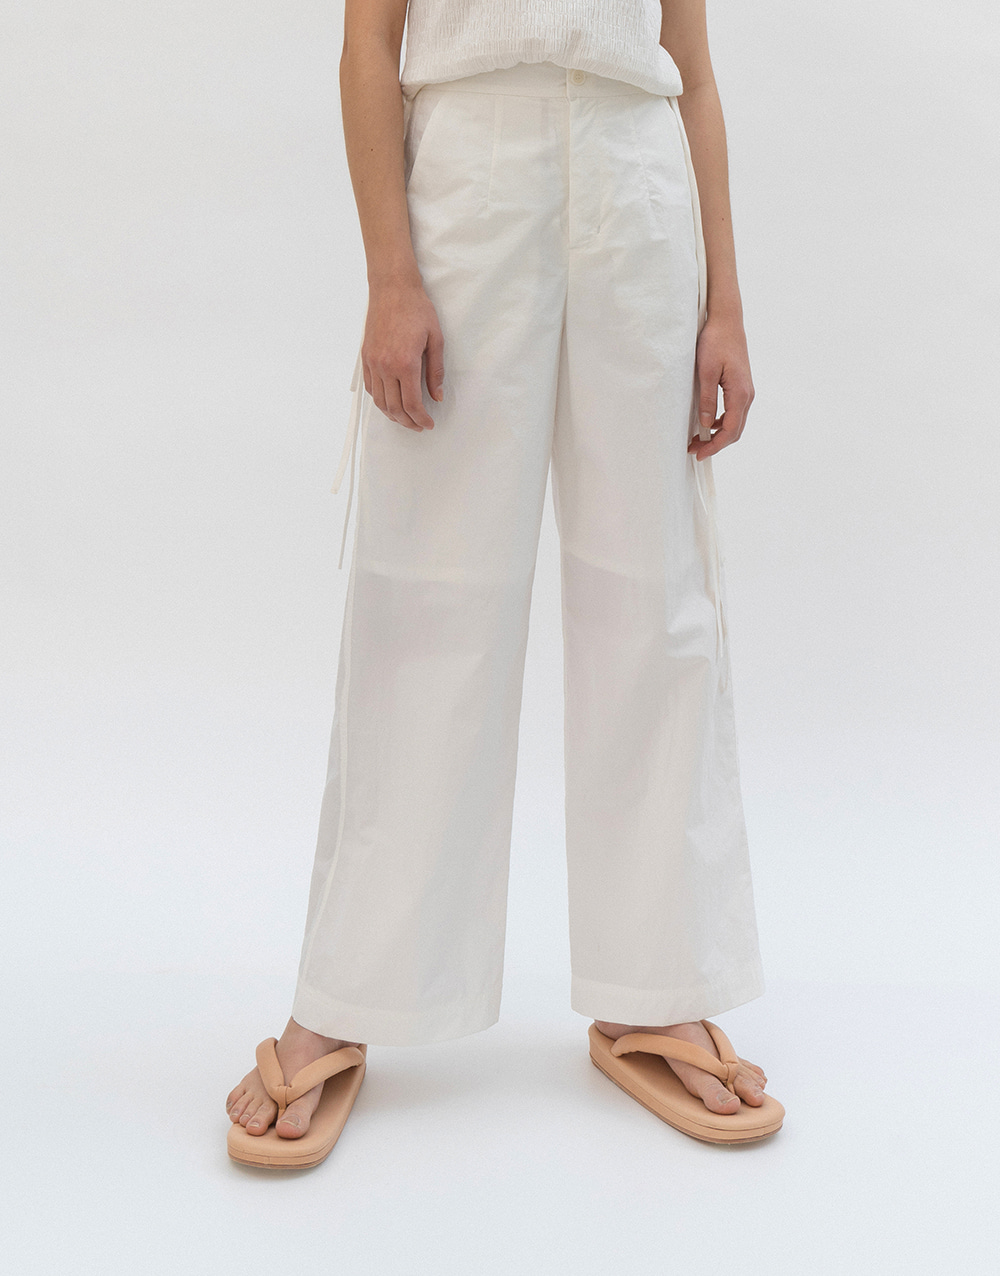 GBH APPAREL ADULT  Crispy Wide Pants WHITE